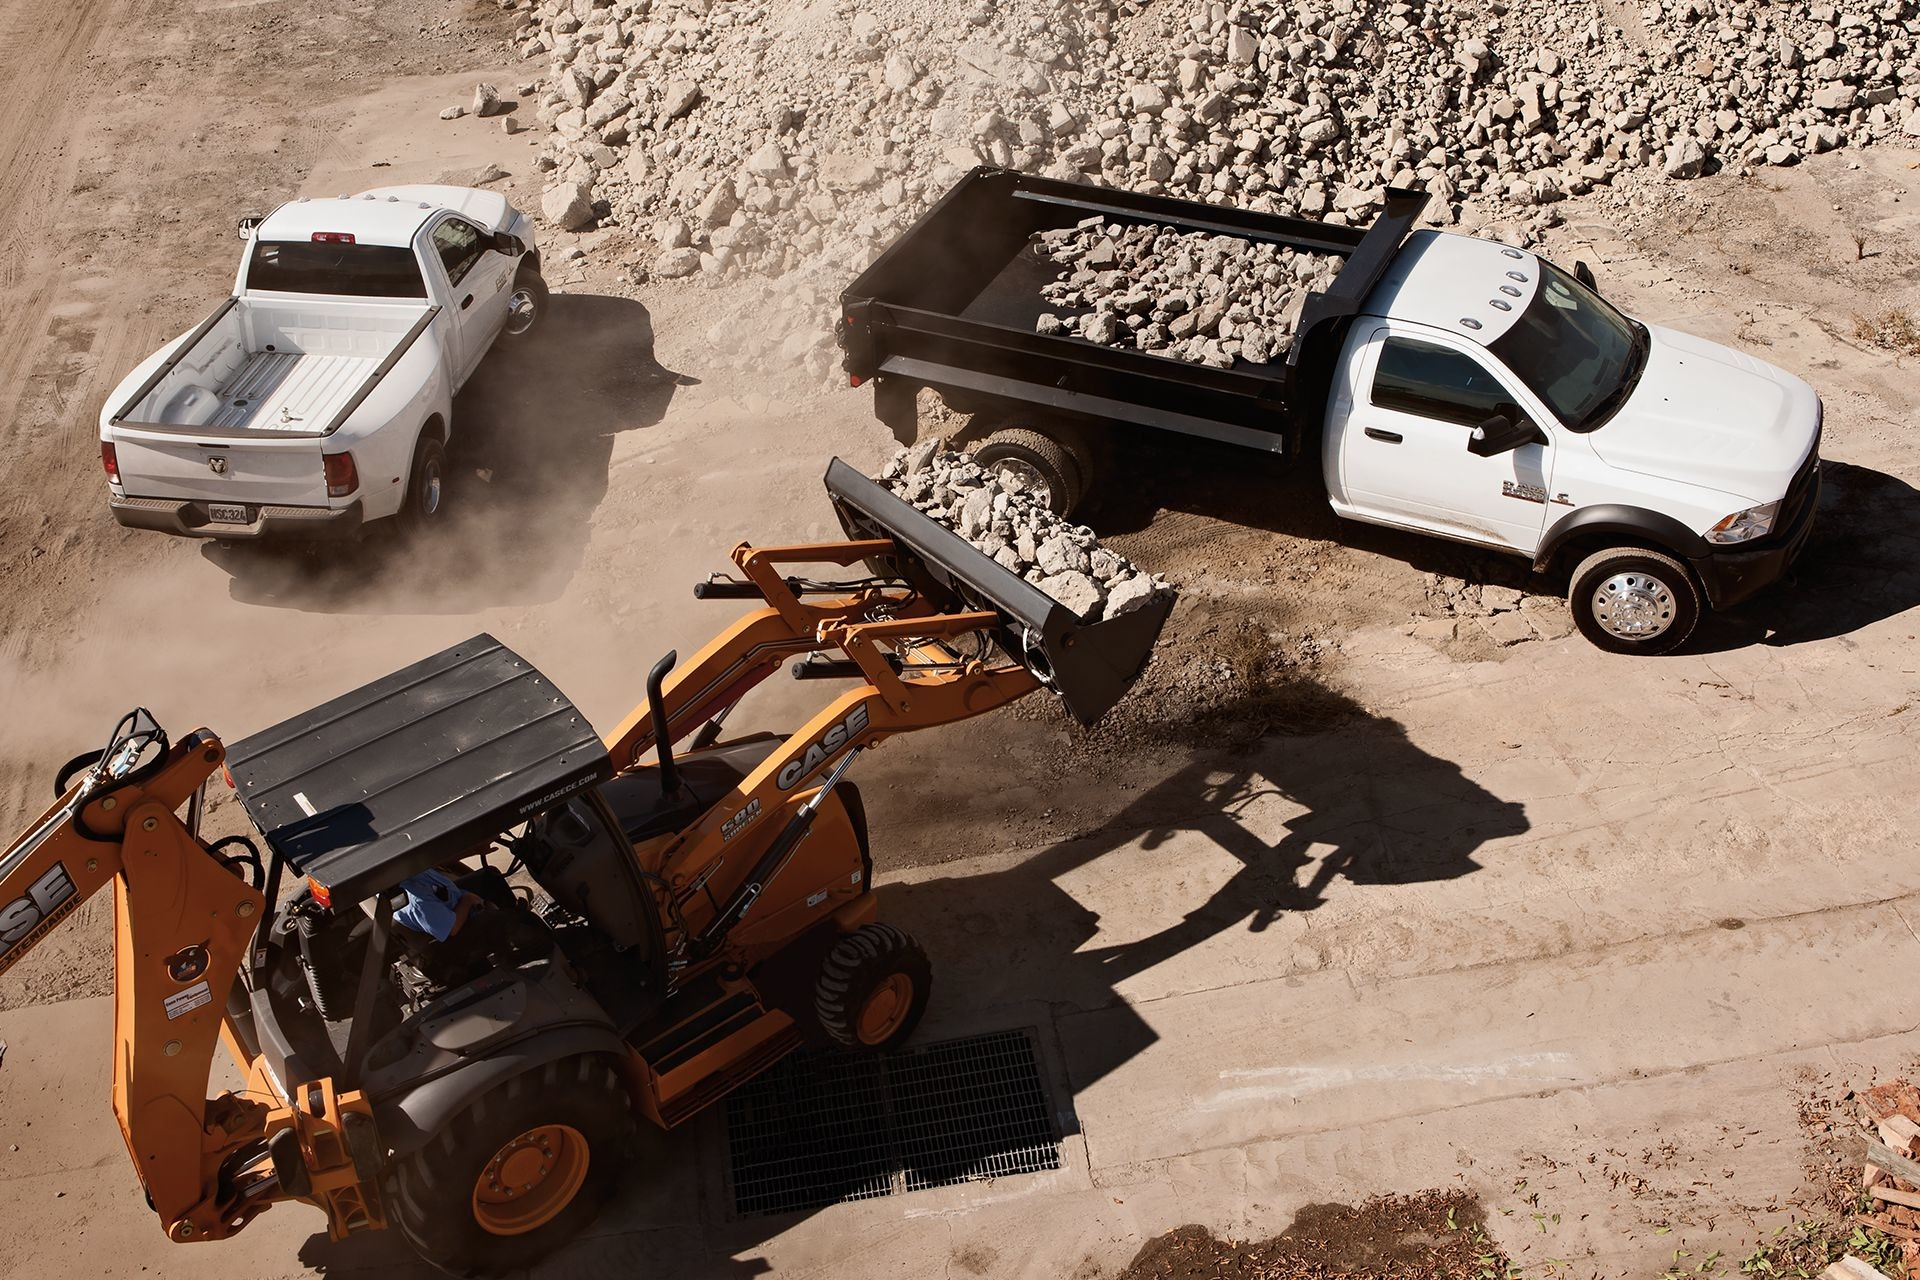 2018 RAM Chassis Cab tough as rocks payload